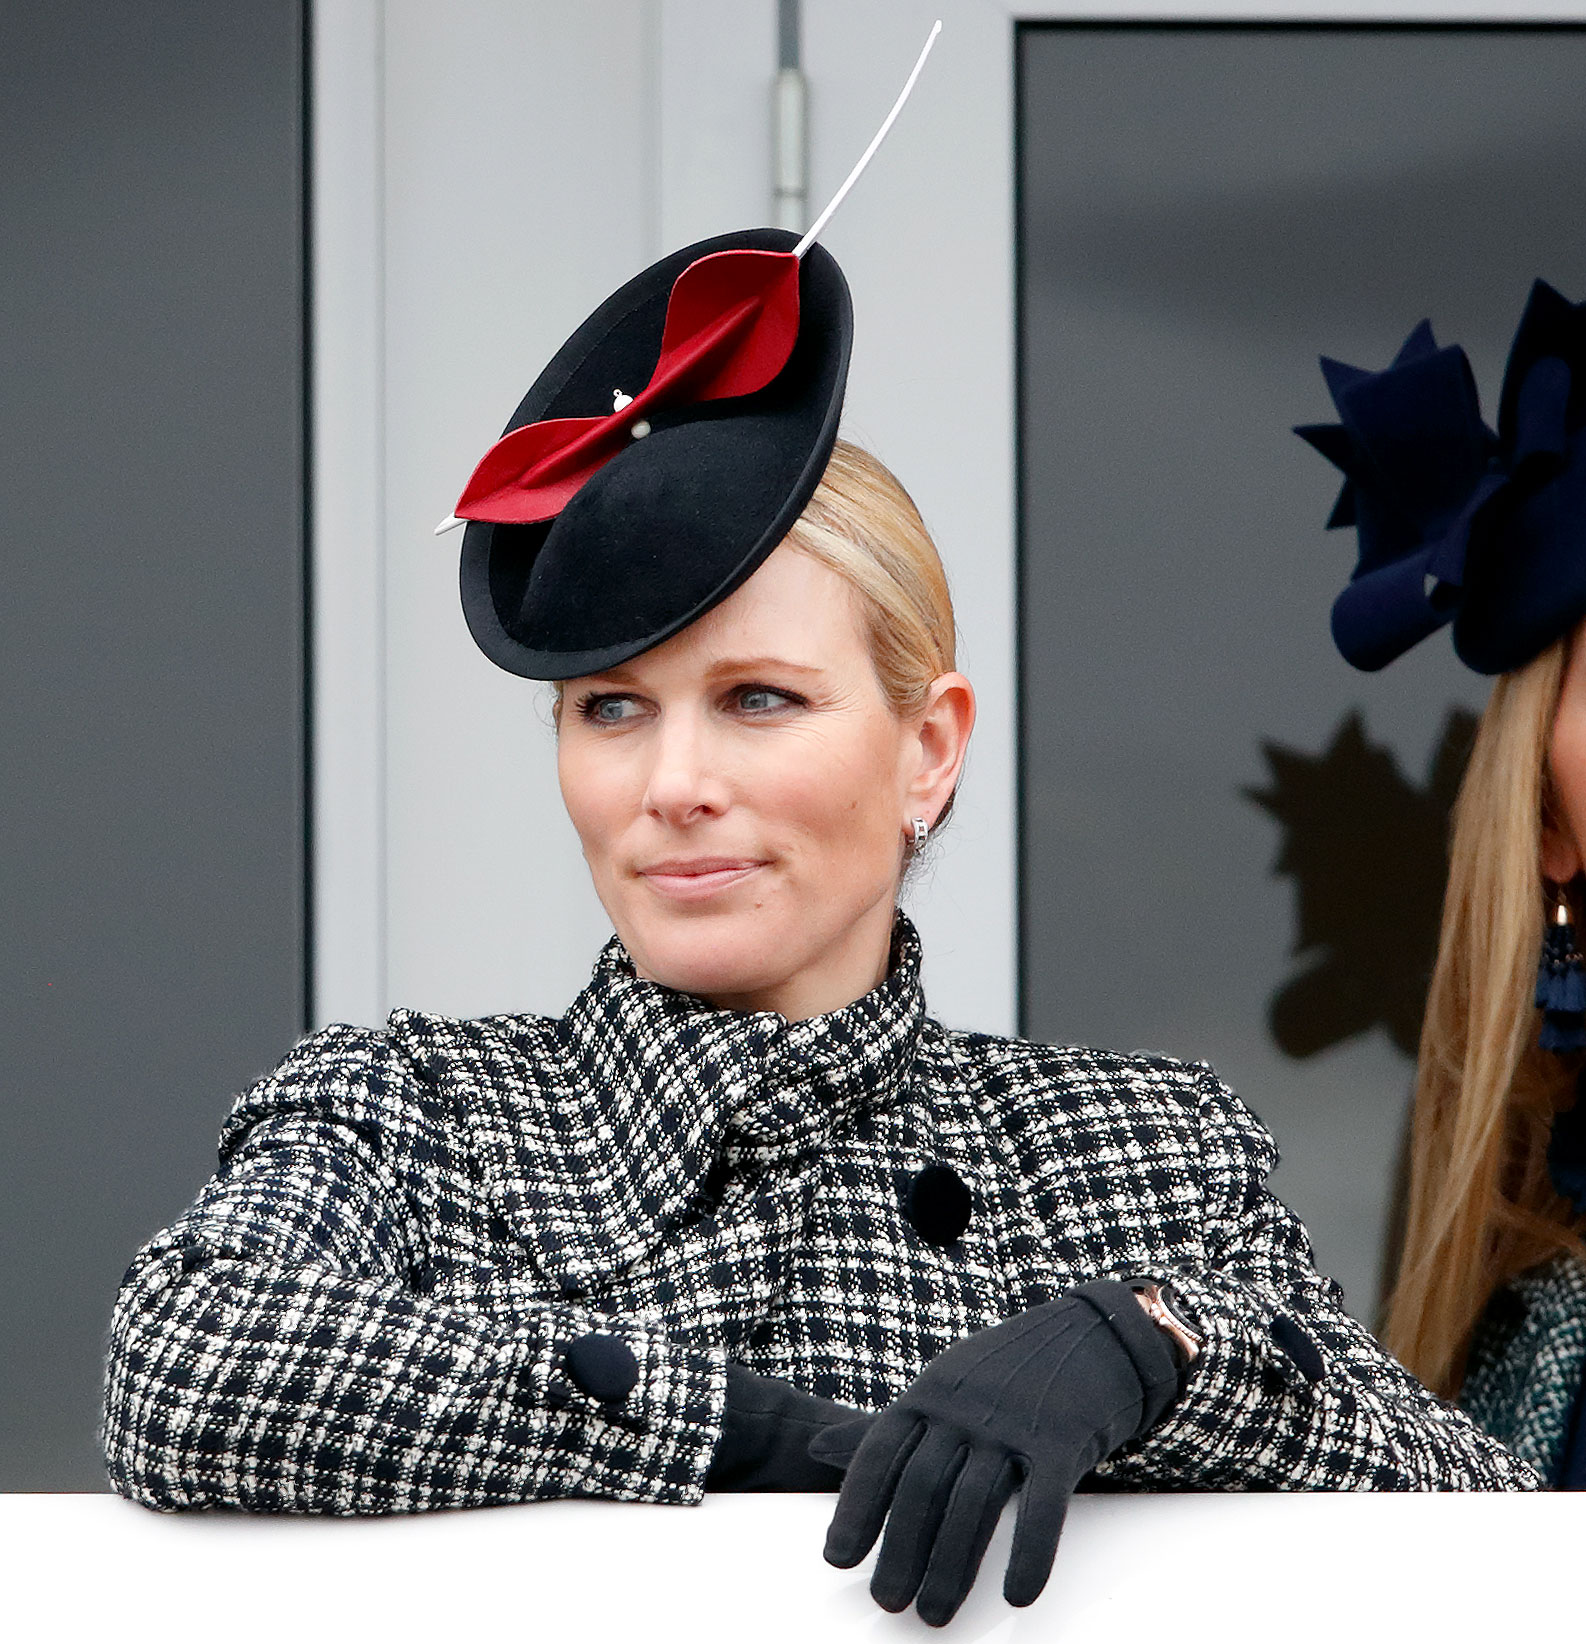 Prince Harry and Pregnant Duchess Meghan Attend His Cousin Zara Tindall's Daughter's Christening - Zara Tindall watches the racing as she attends day 4 'Gold Cup Day' of the Cheltenham Festival at Cheltenham Racecourse on March 15, 2019 in Cheltenham, England.